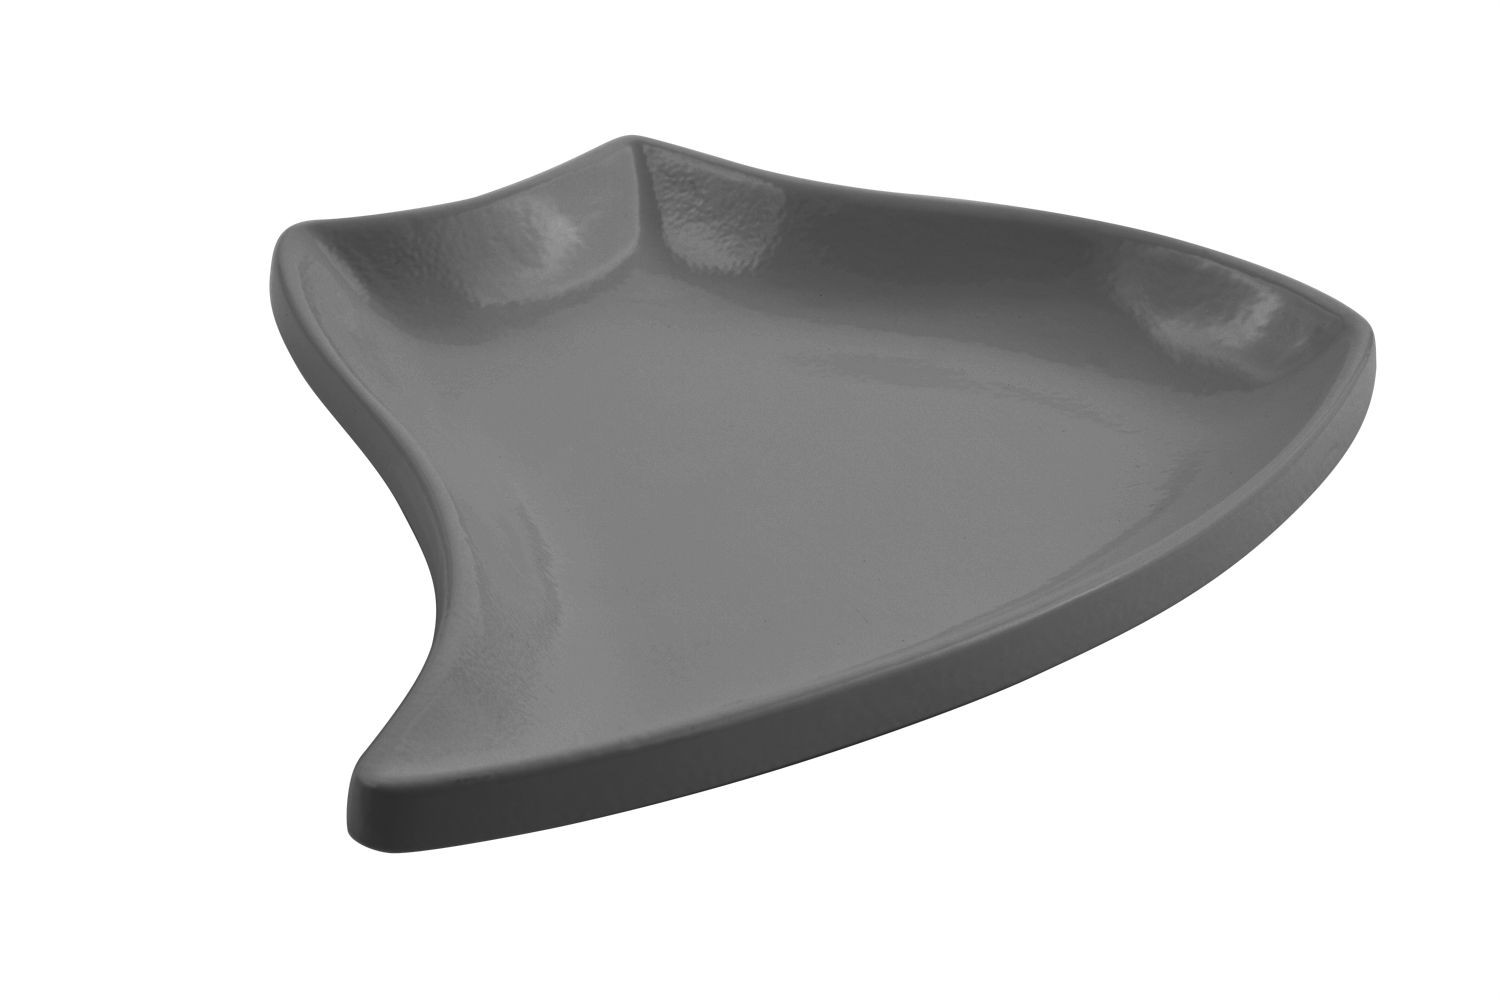 "Bon Chef 70001S Futura Platter, Sandstone 11 3/4"", Set of 2"